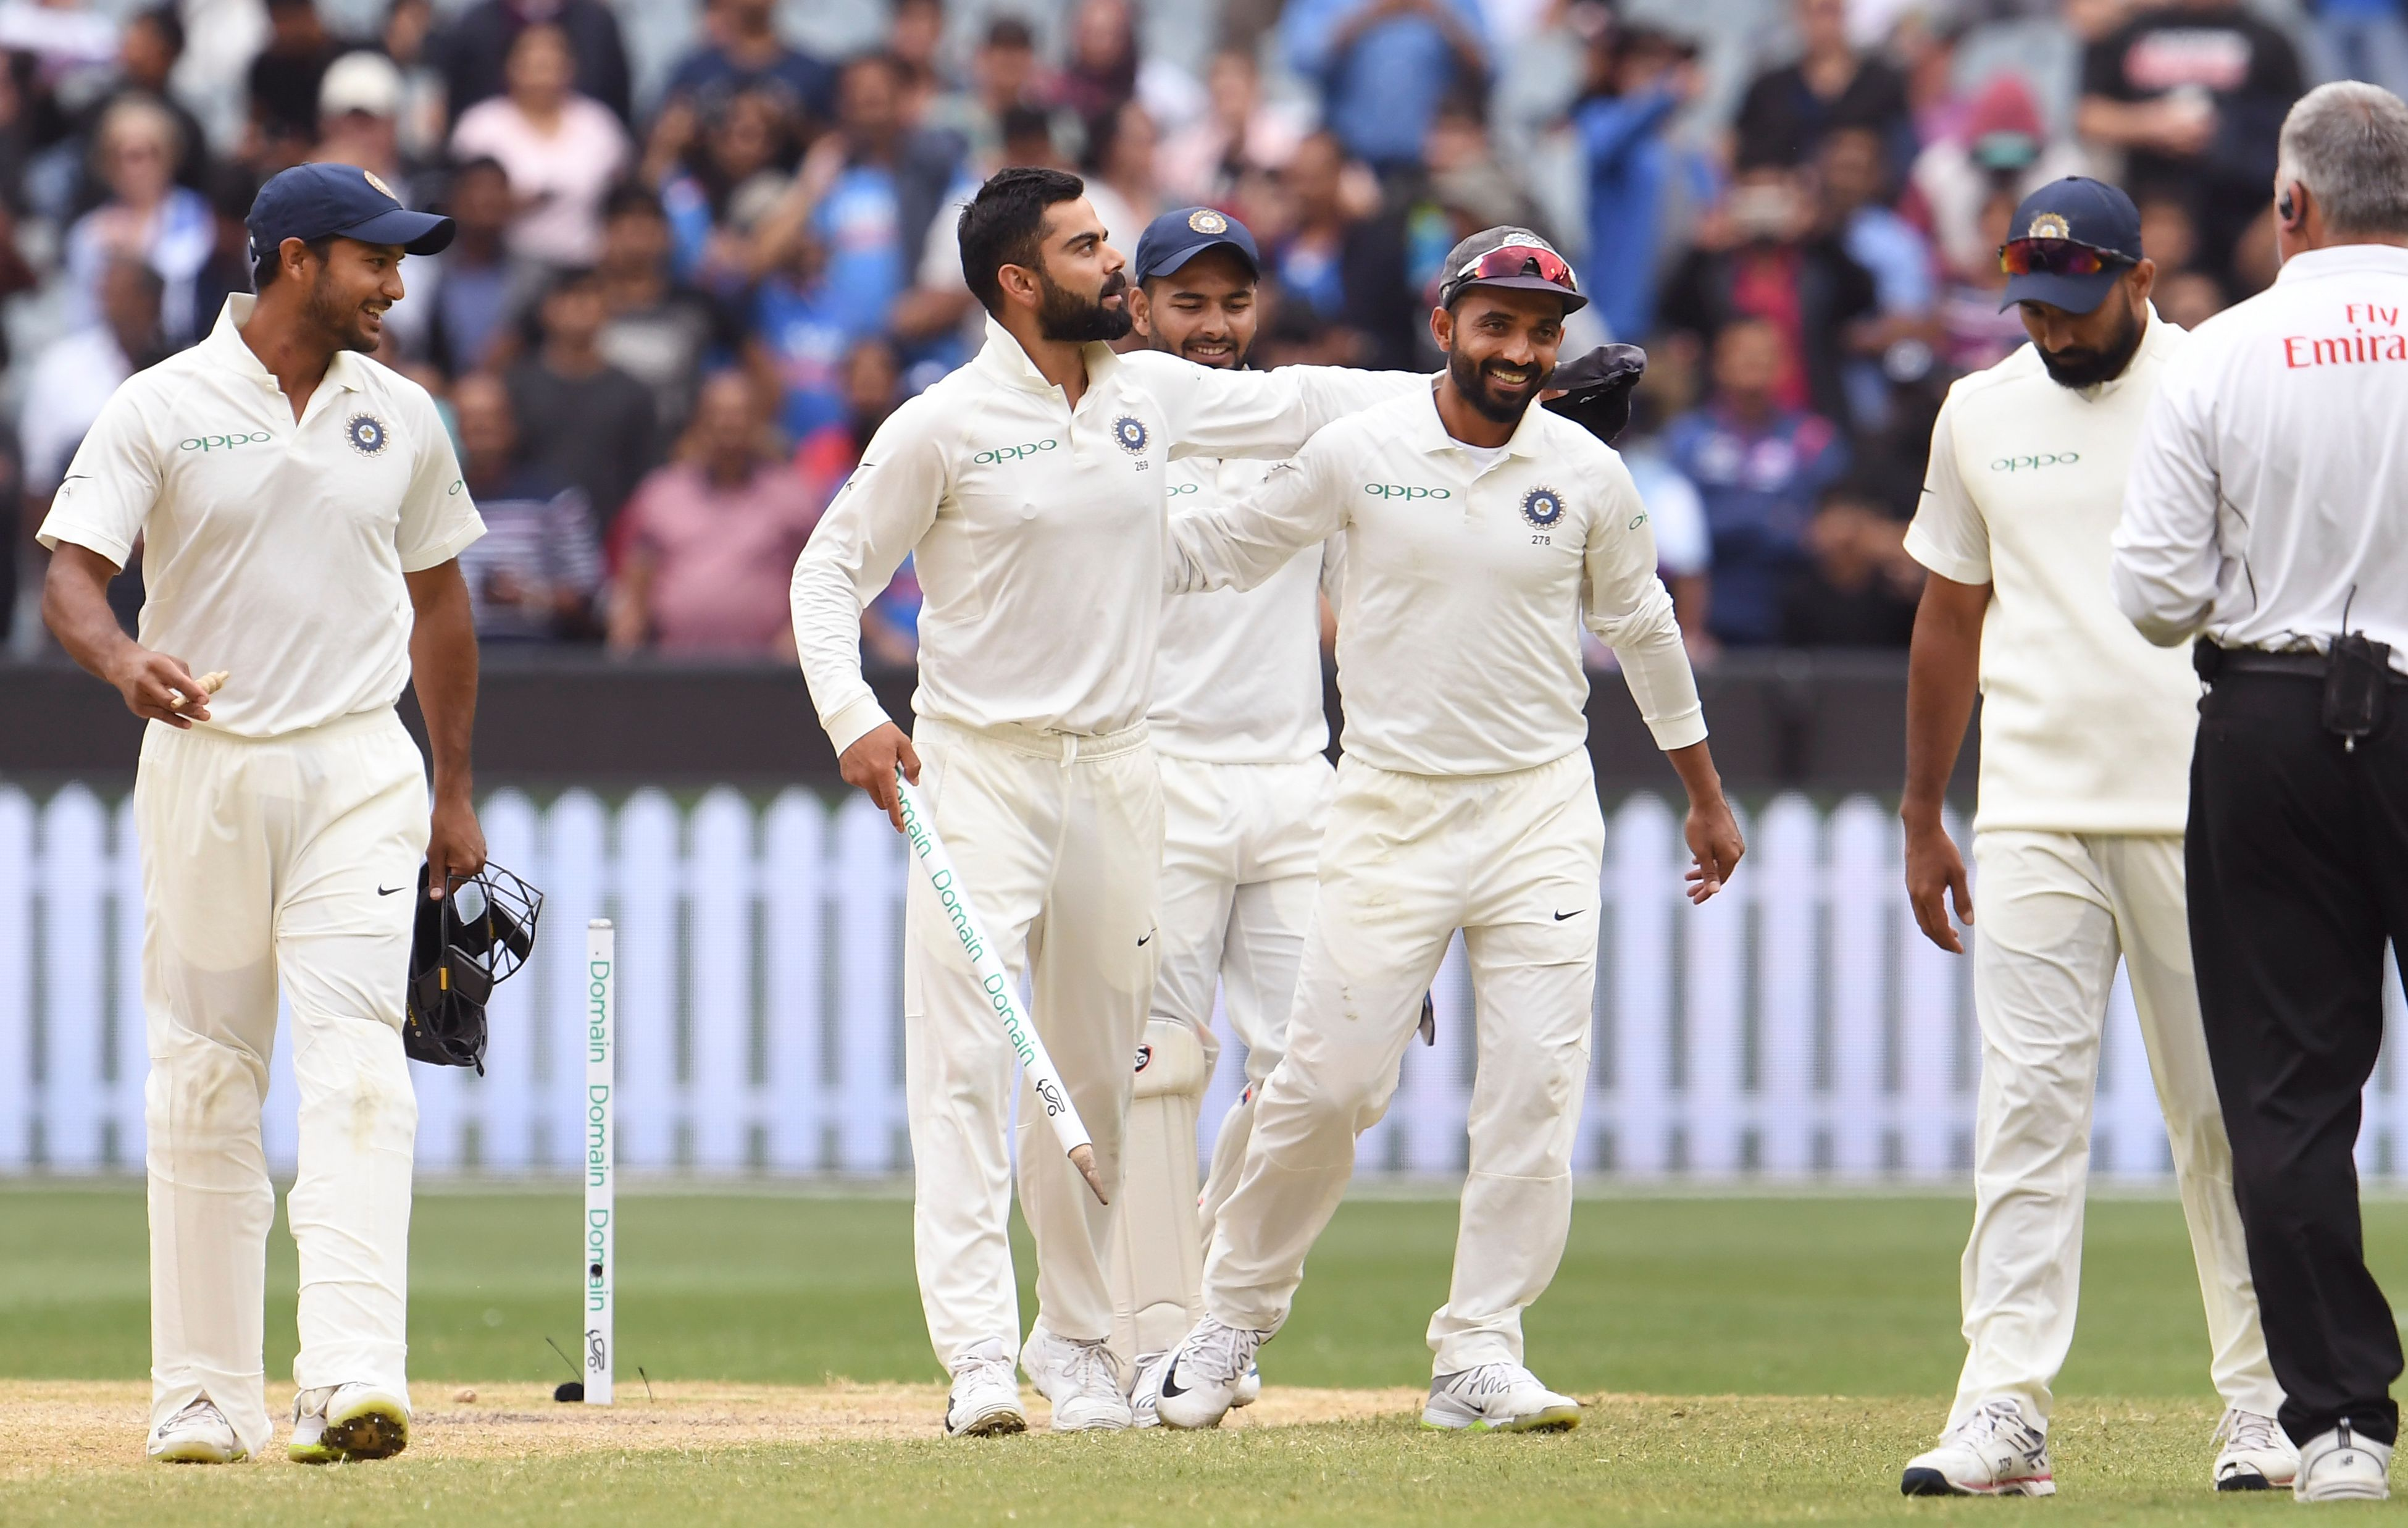 sports news, Cricket news in hindi, Ind vs Aus, Indian won melbourne test, captain Kohli, Believe, Flexibility change in game, Cheteshwar Pujara batting